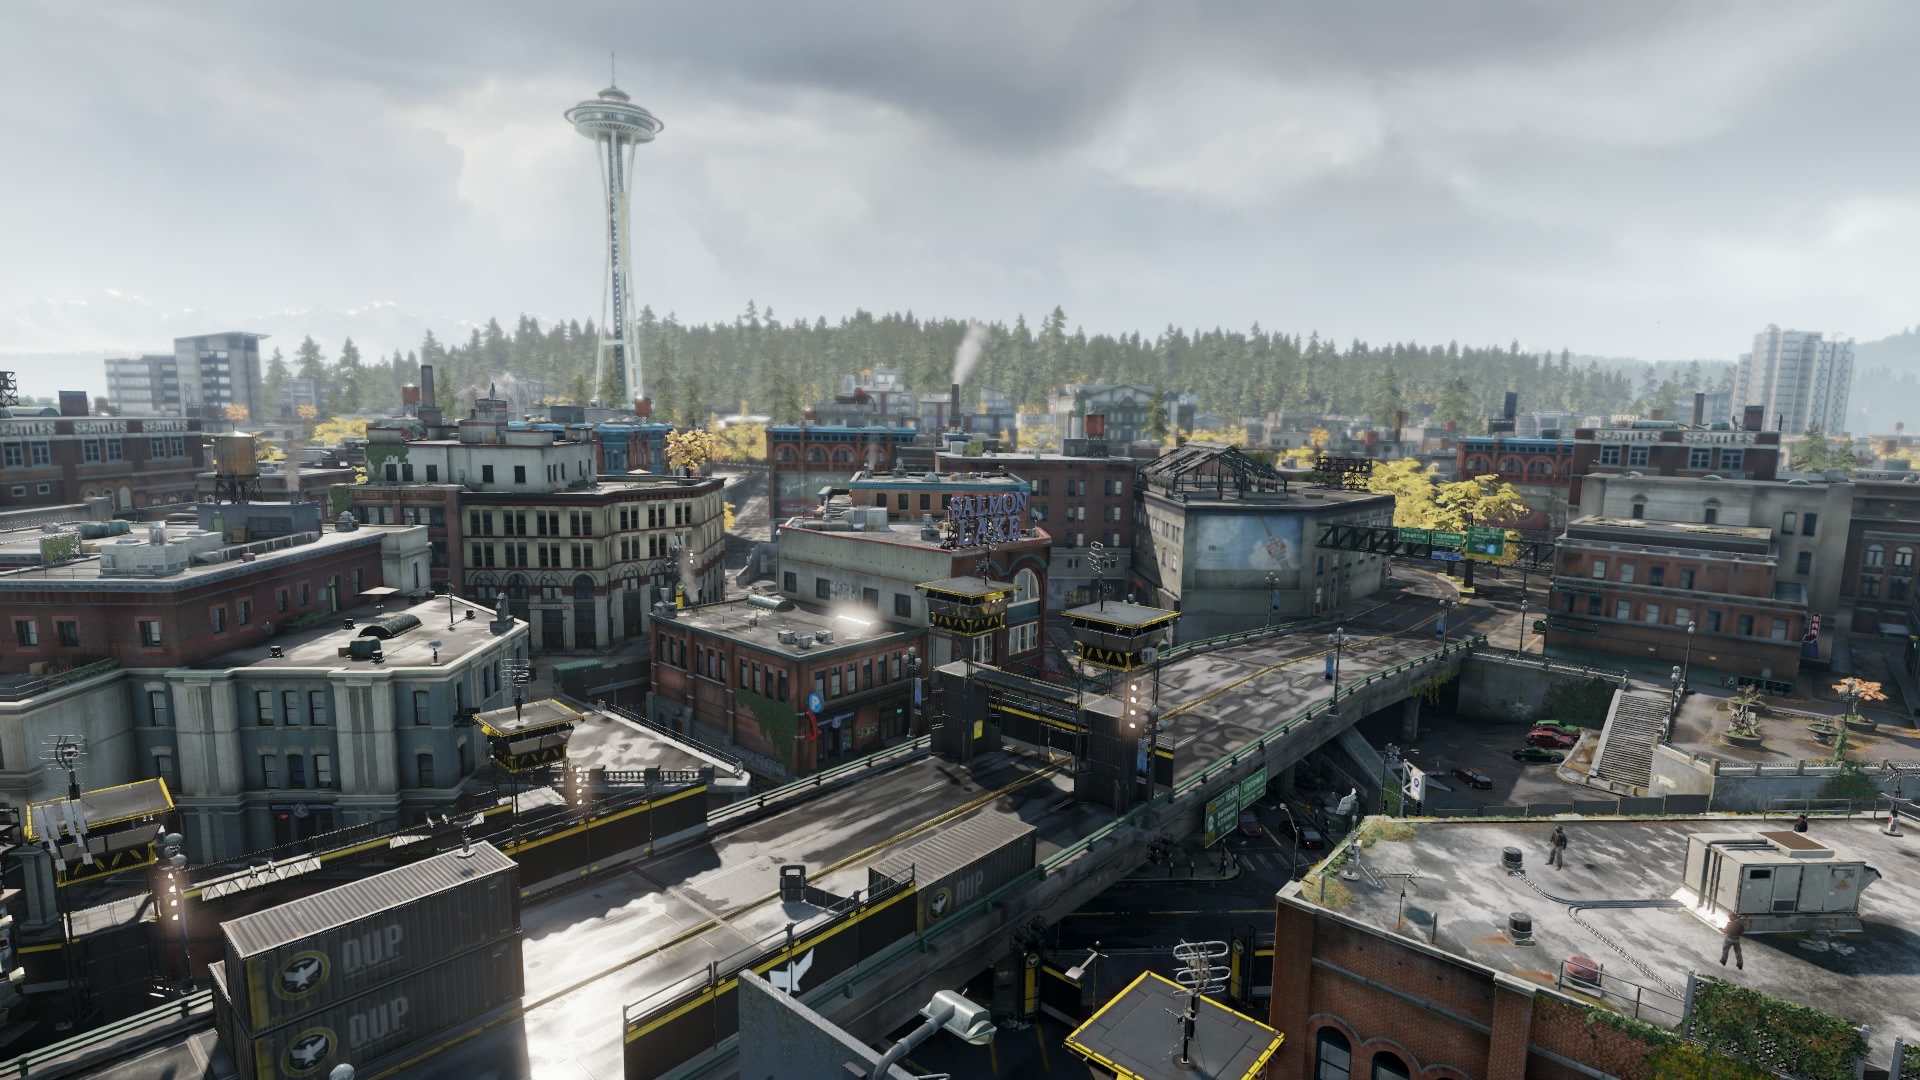 Seattle   Infamous Wiki   FANDOM powered by Wikia on infamous oc, infamous first light, infamous son, infamous lovely, infamous black lightning, infamous eugene, infamous augustine, infamous conduits, infamous game, infamous glass, infamous anime, infamous second daughter, infamous kessler, infamous beast, infamous limited edition, infamous good karma, infamous napalm, infamous 1 concept,